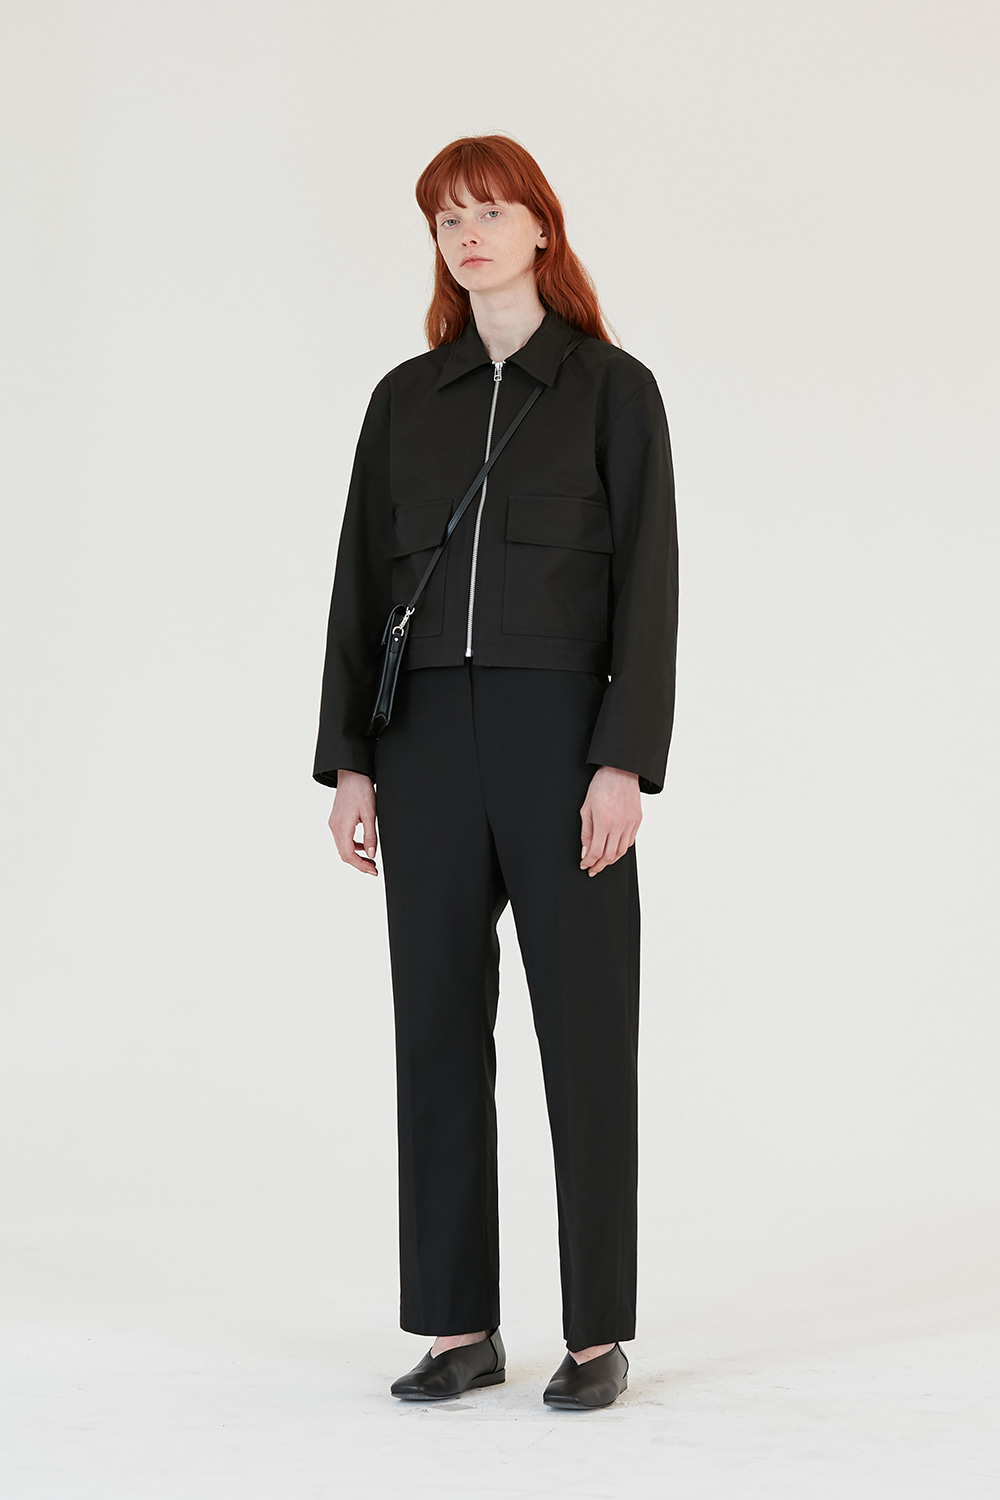 Two Pocket Crop Jacket Women [Black]